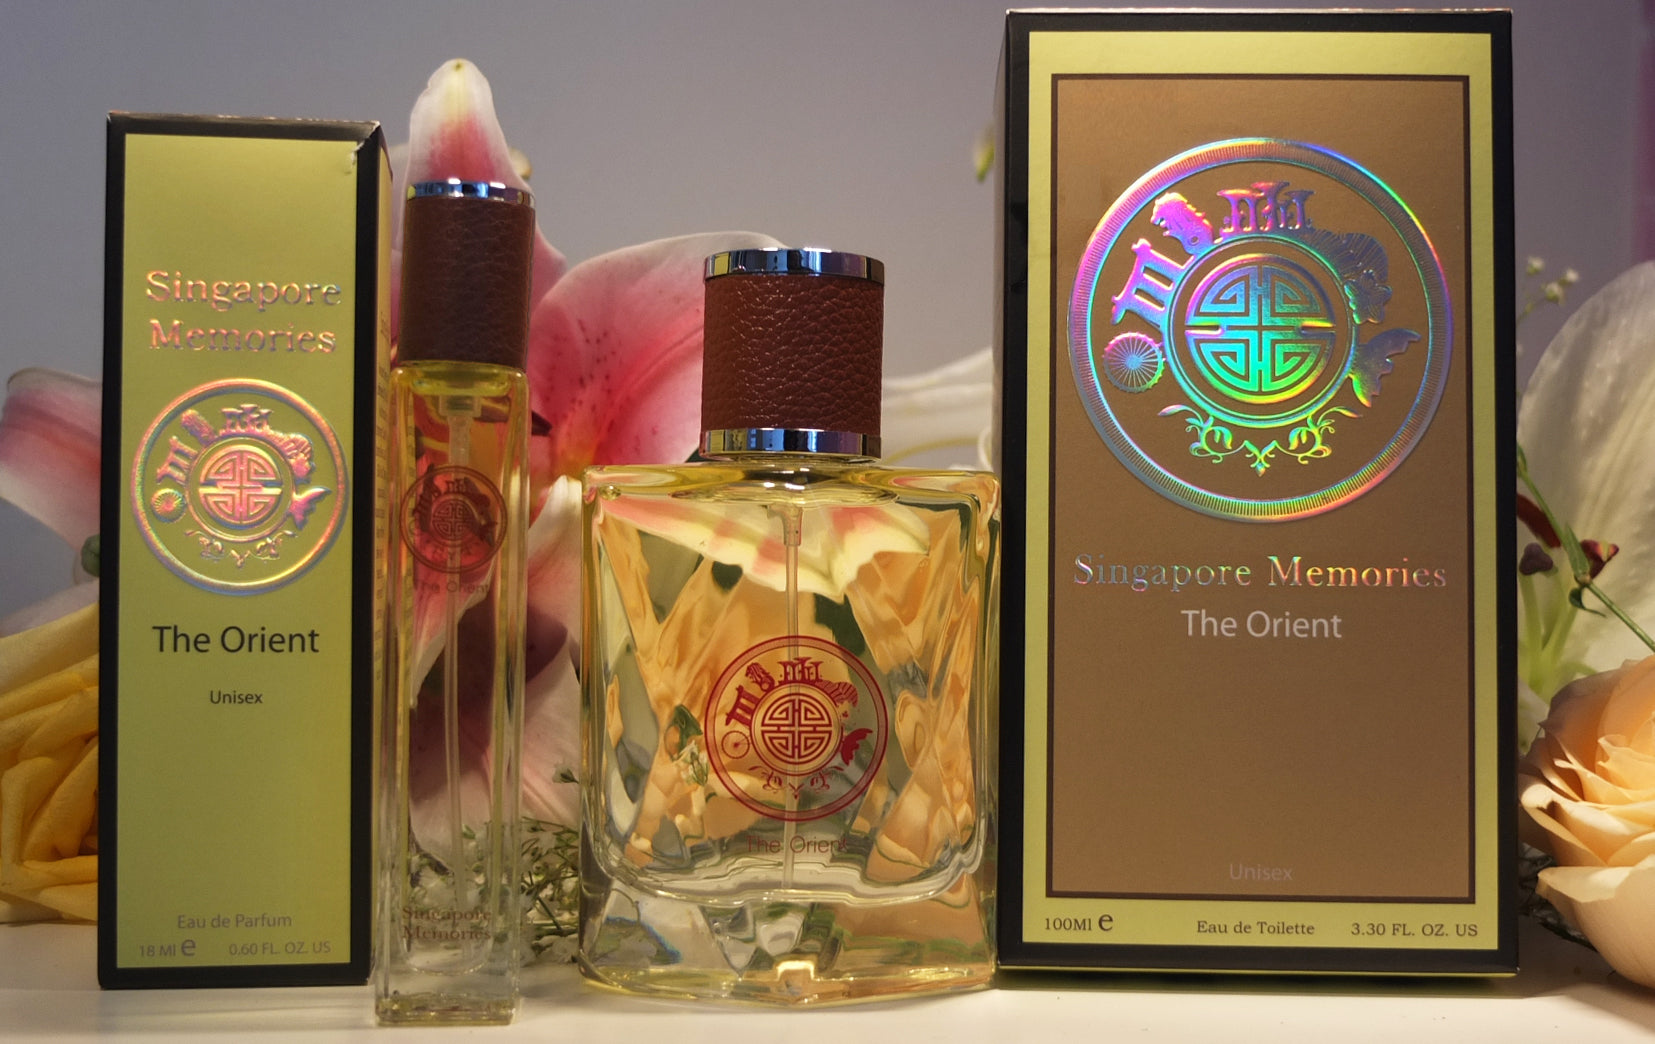 Singapore Perfume Store : Singapore Memories , The Orient, Gift for Overseas Friend